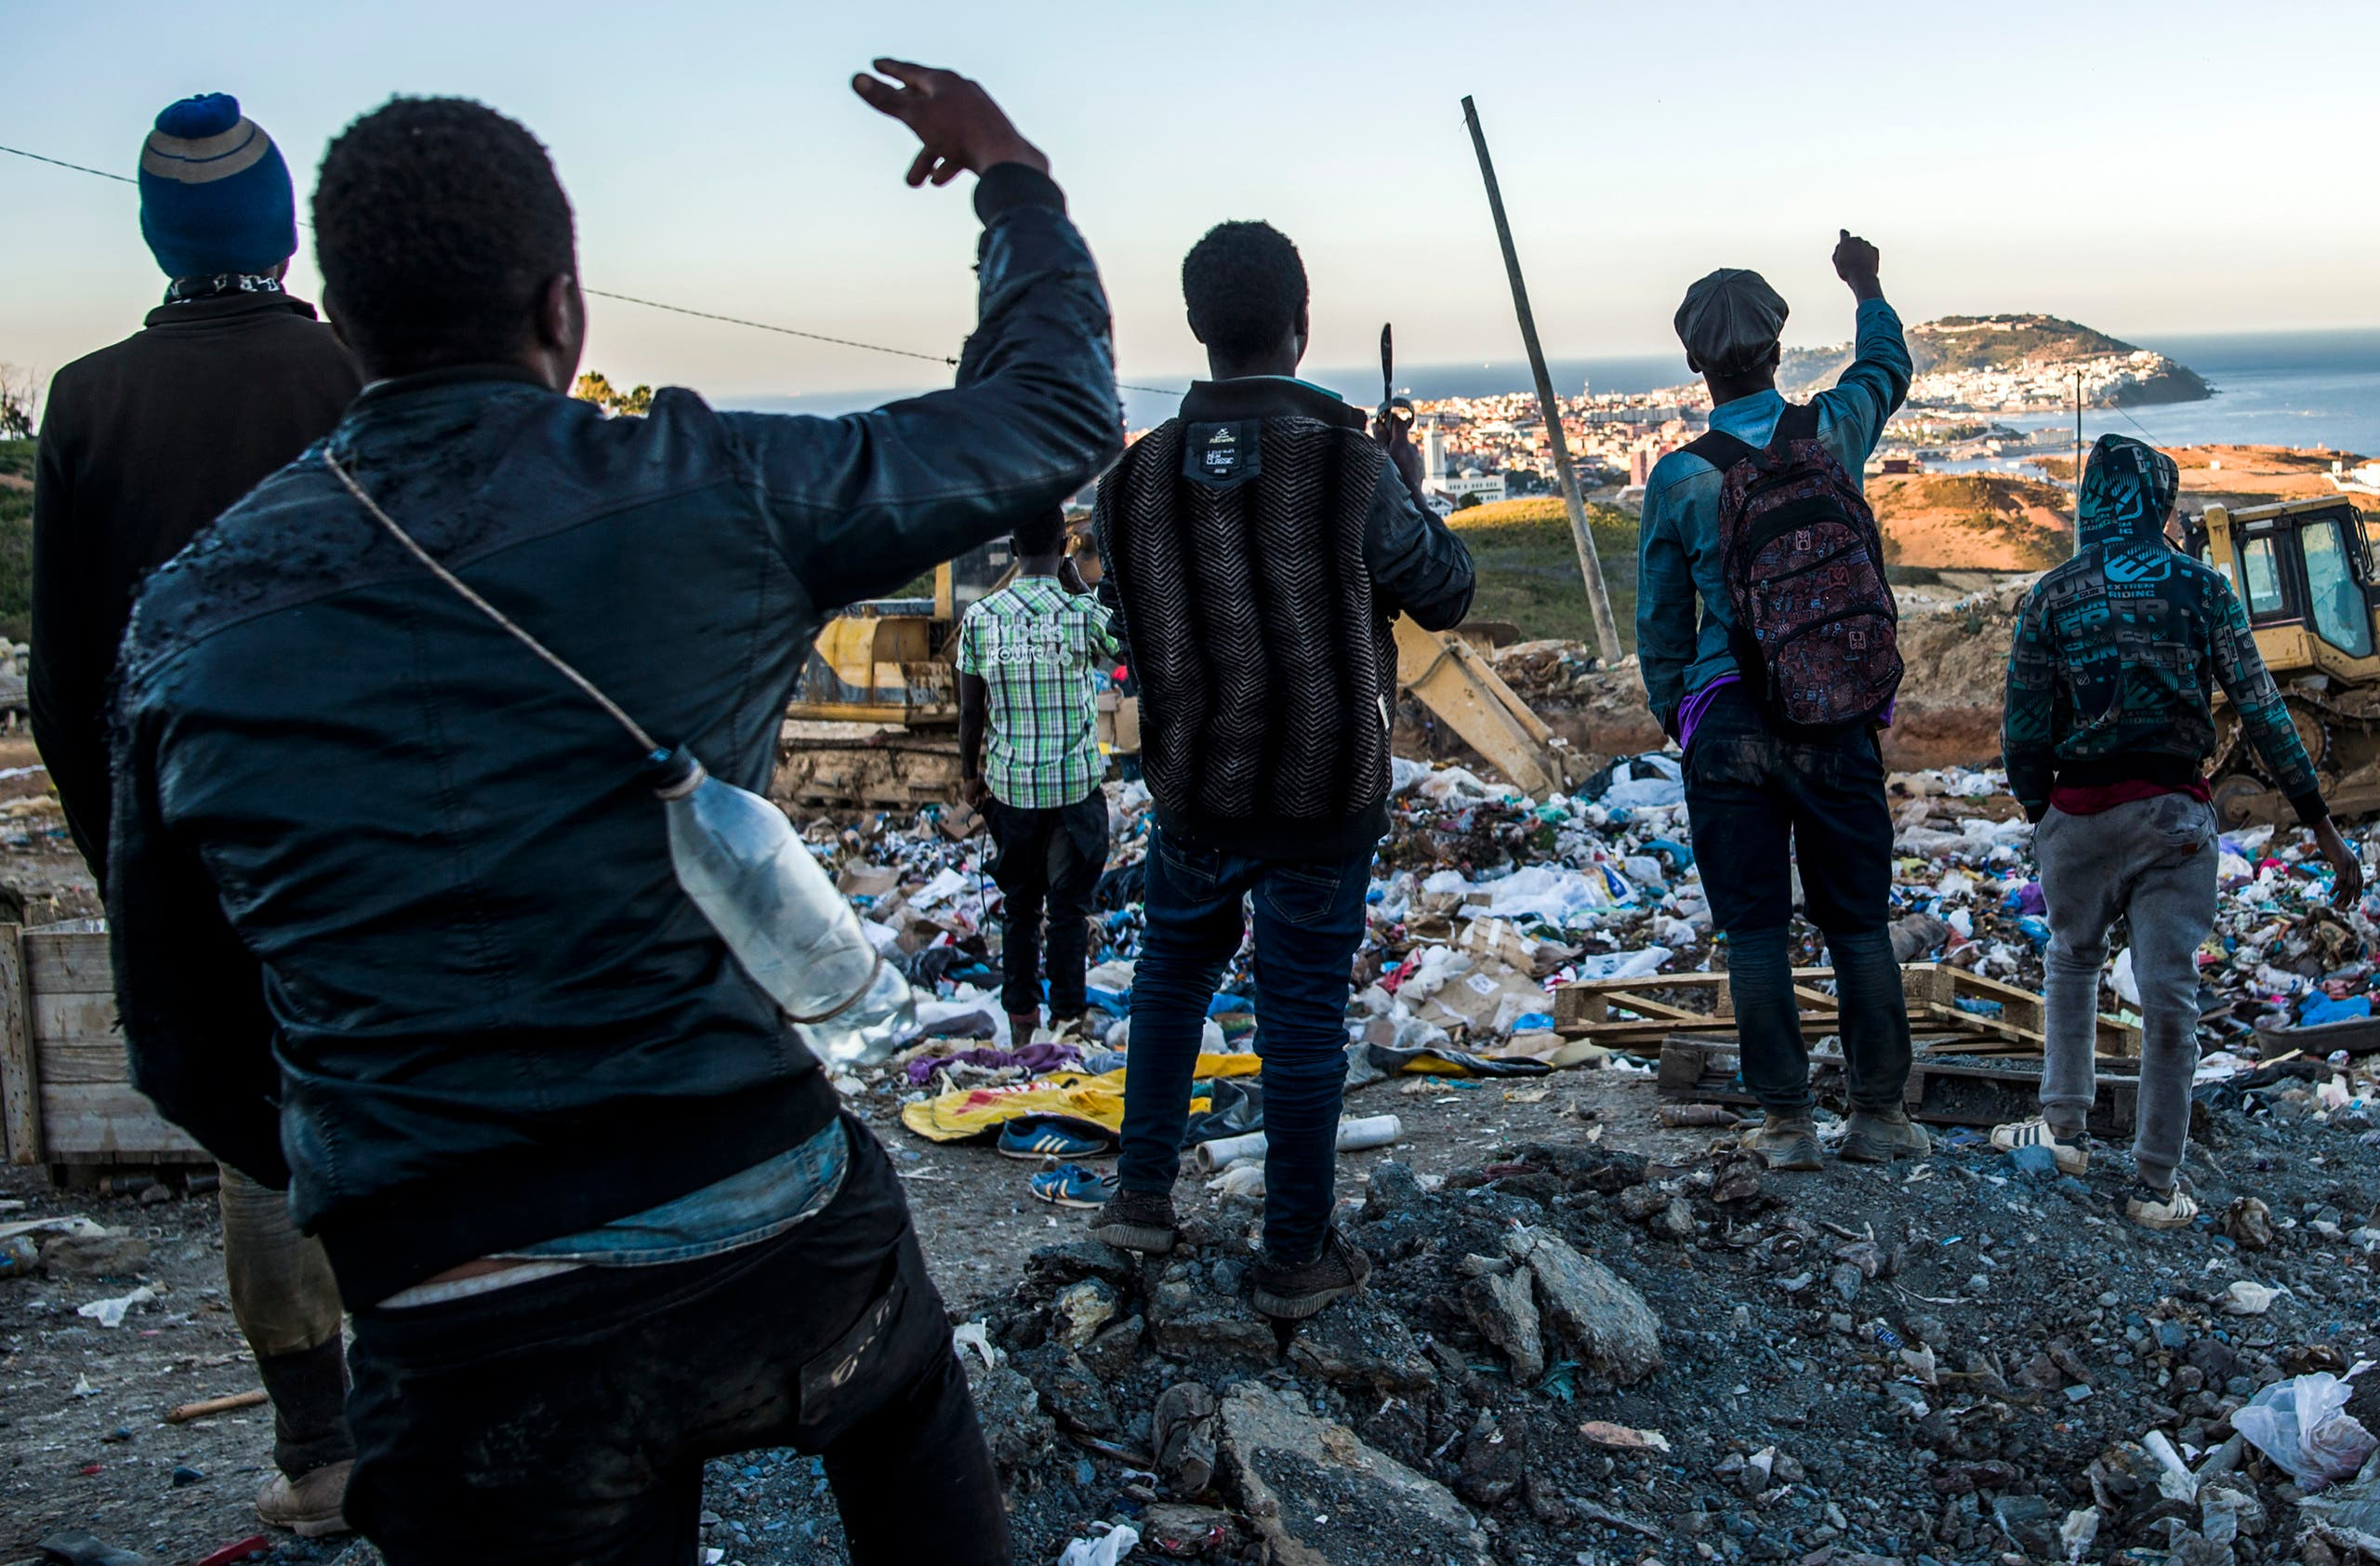 migrants looks for food in morroco garbage (AFP)